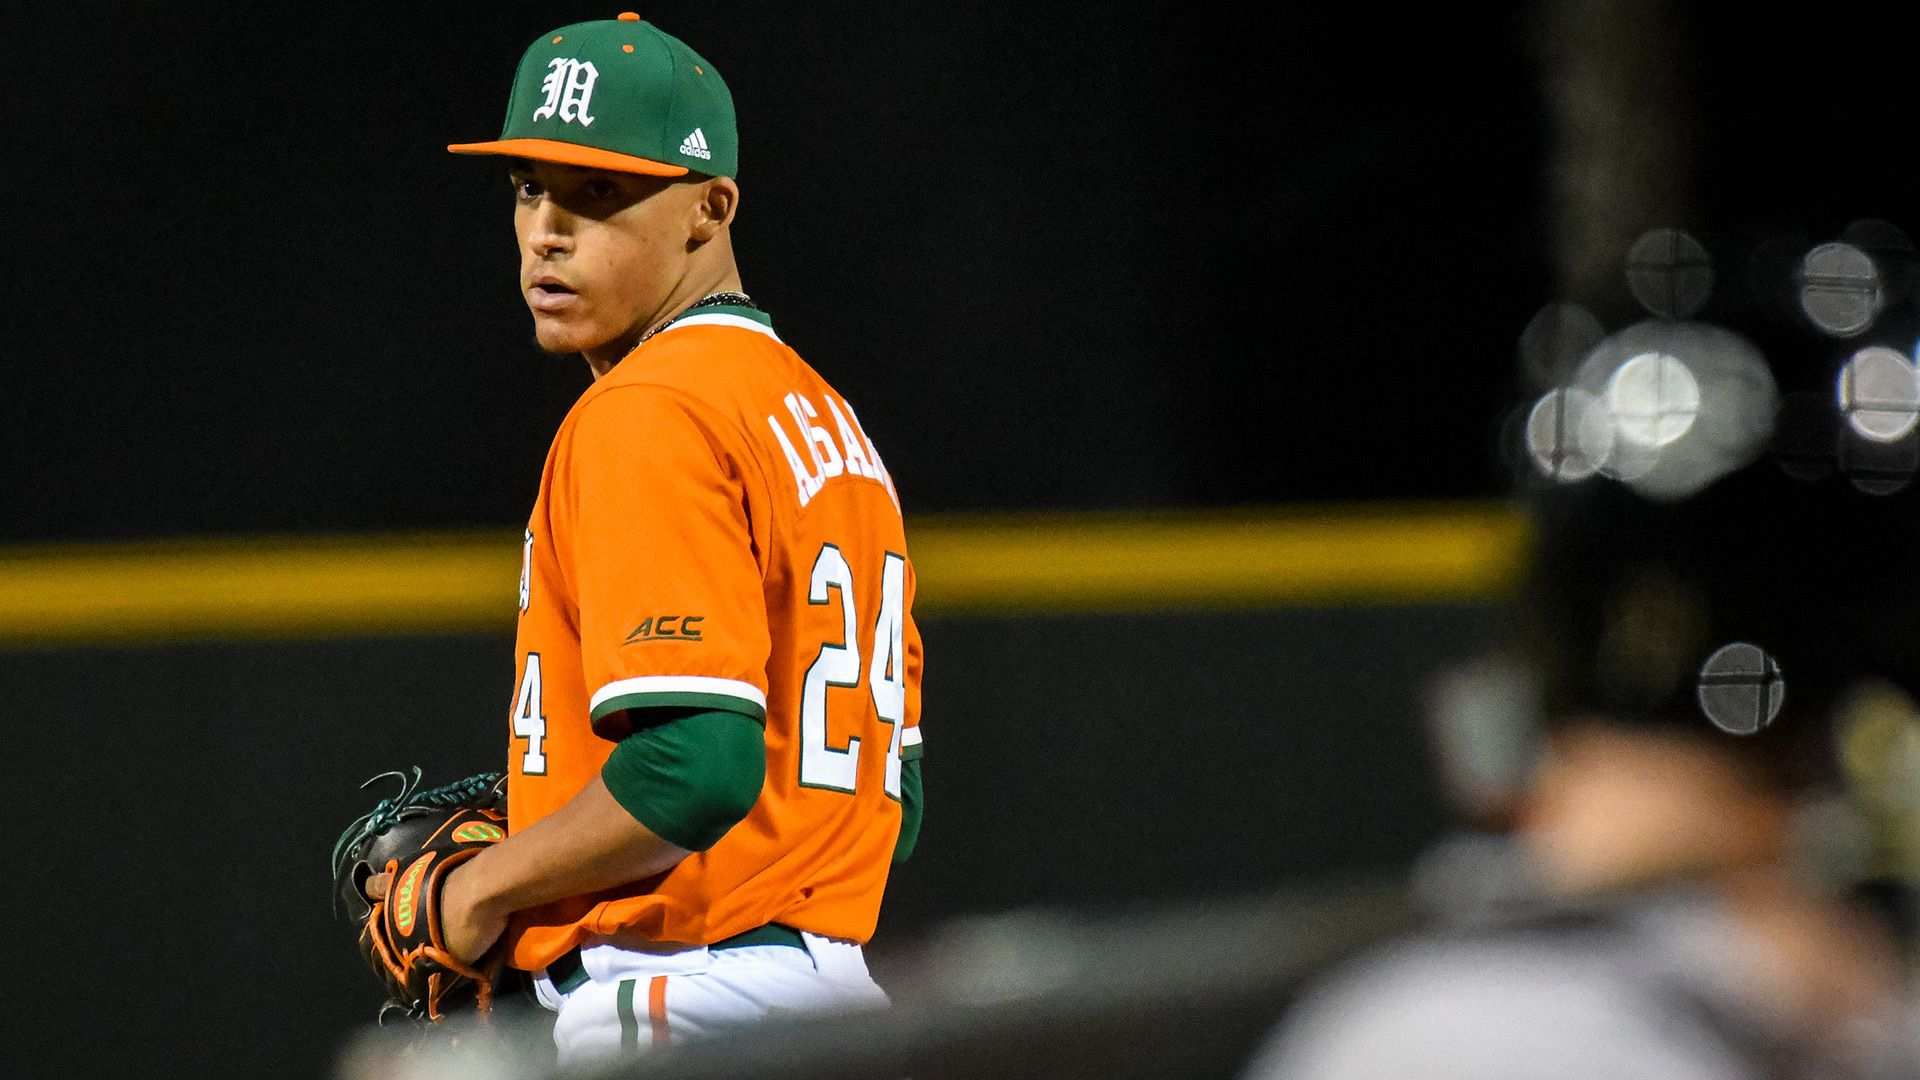 Rosario Named ACC Pitcher of the Week